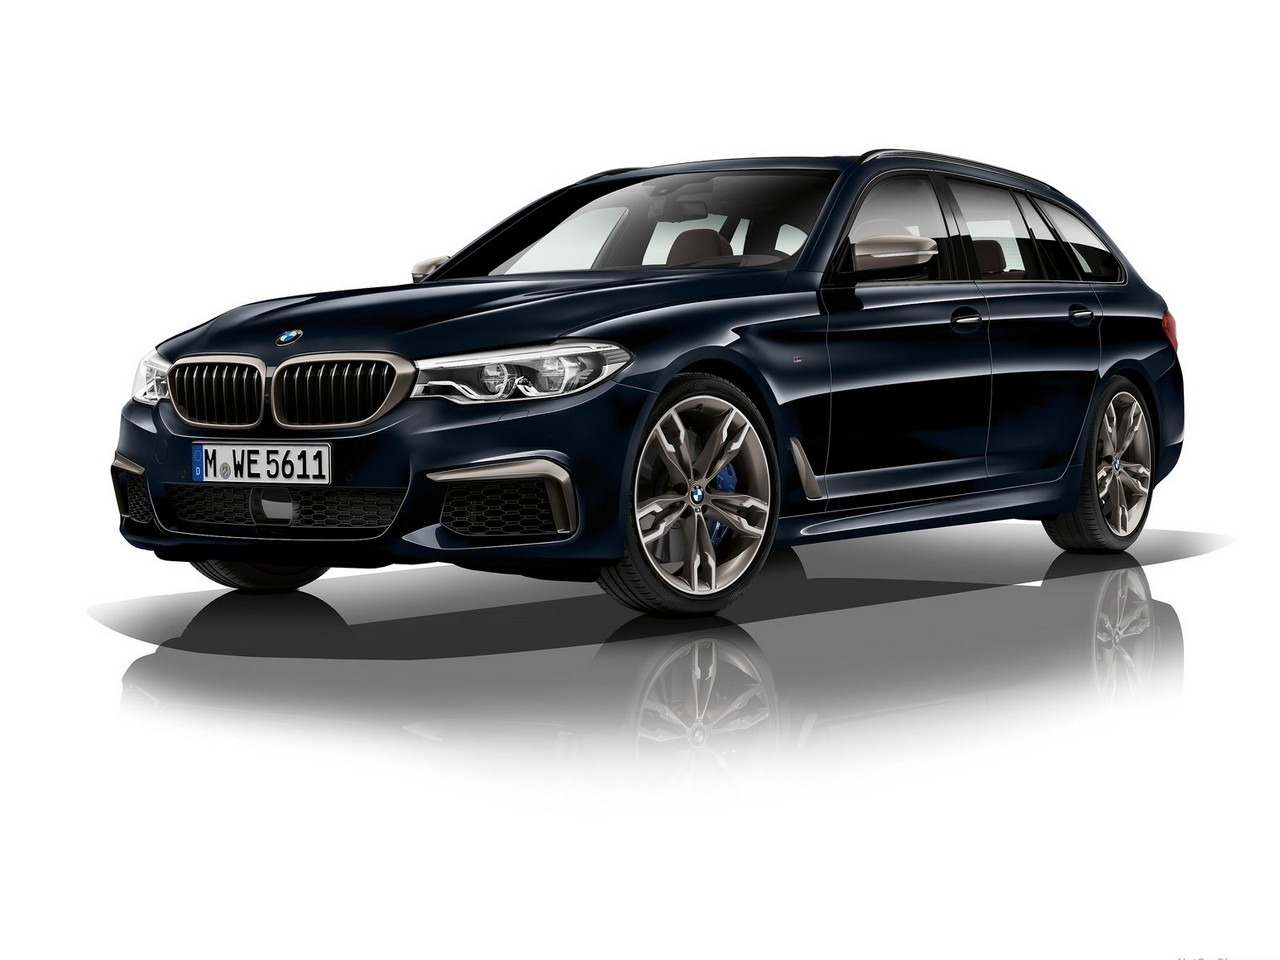 2018 BMW M550d xDrive Touring